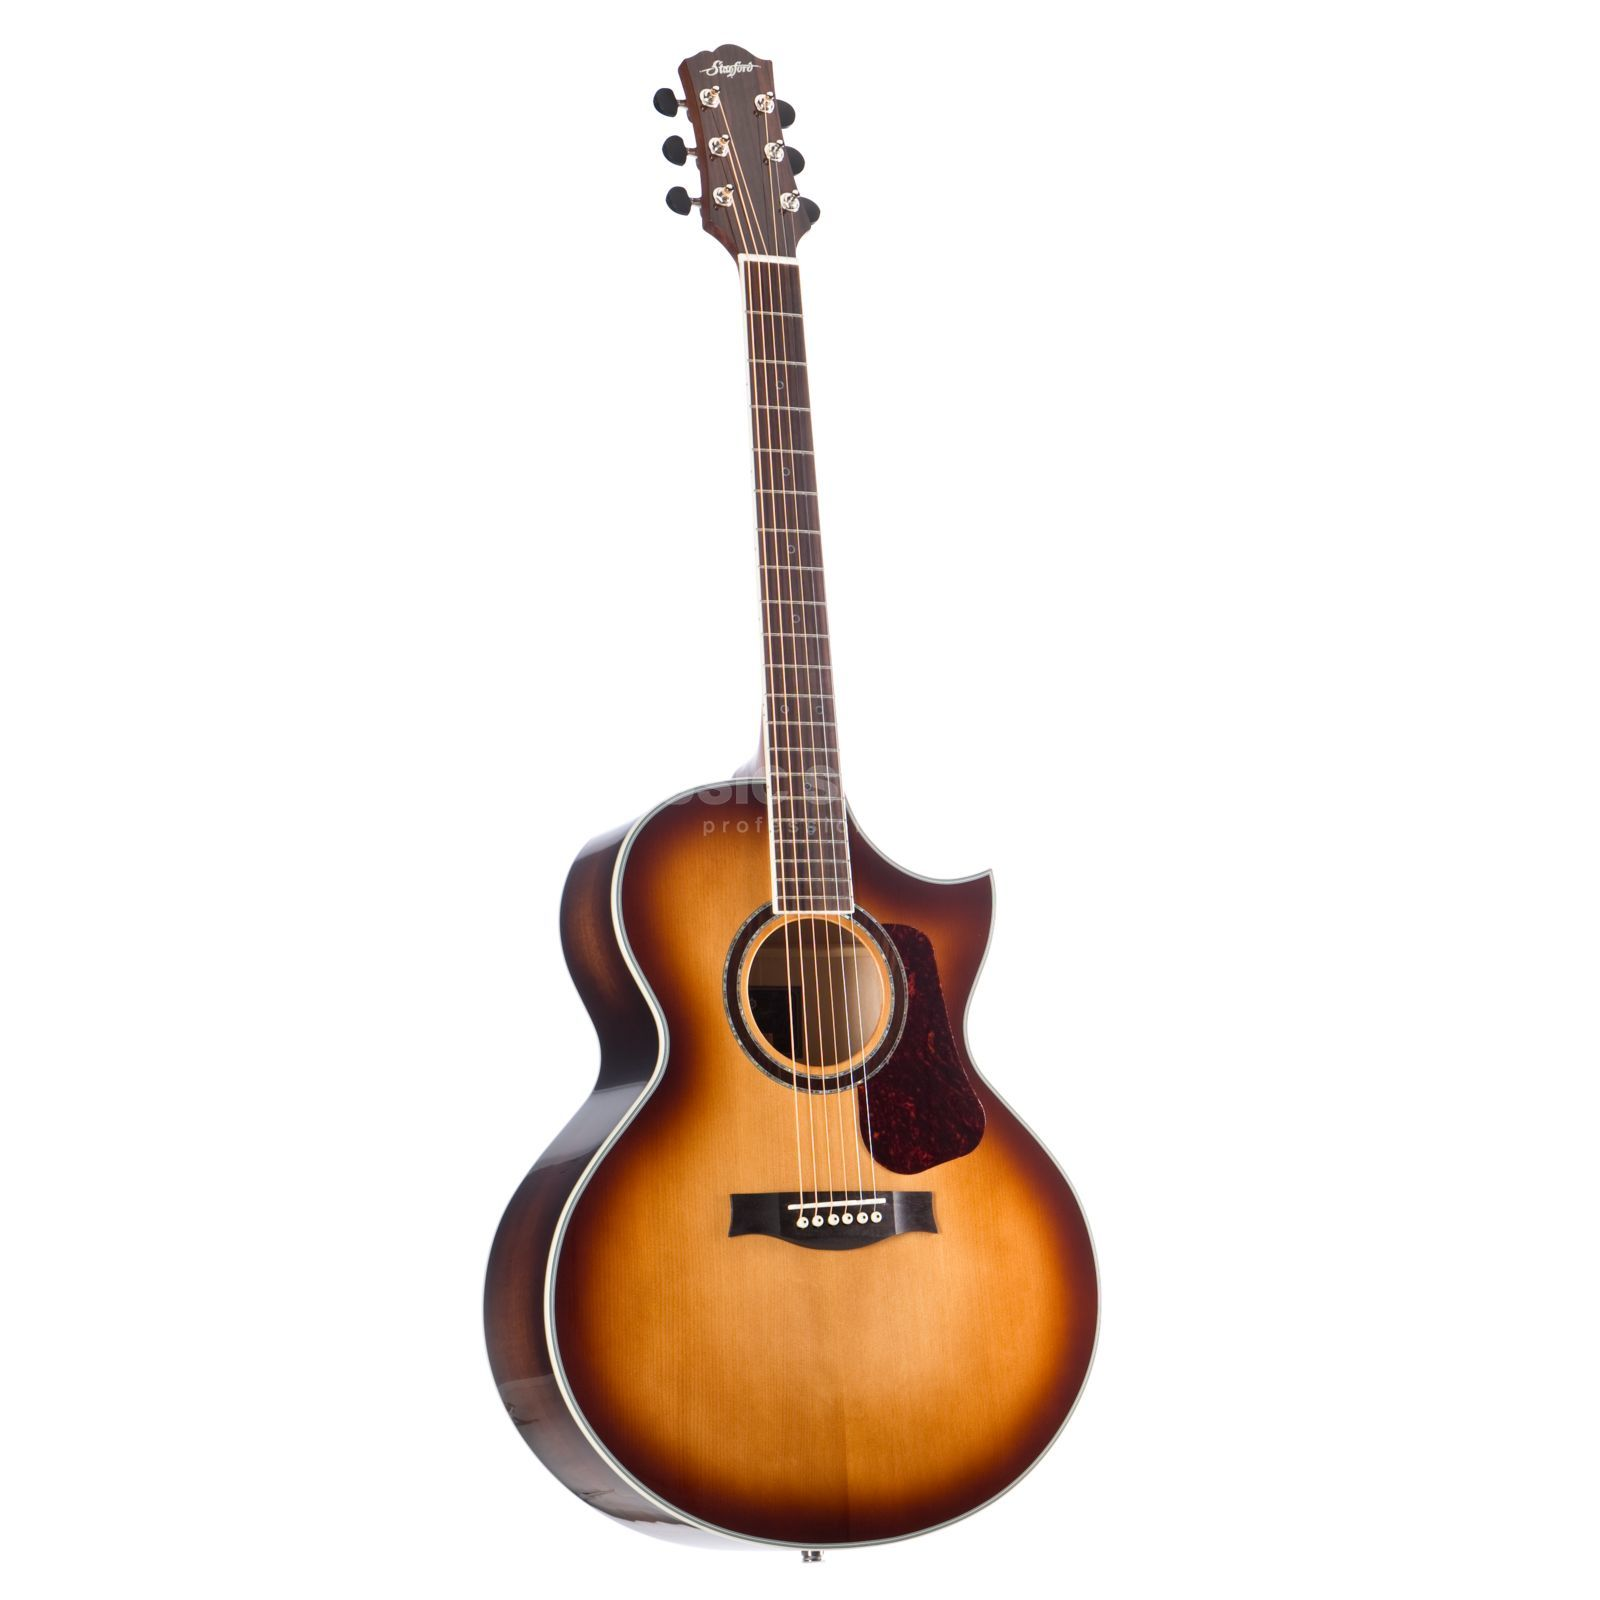 Stanford SuperStage S 30 SFM ECW Antique Burst Изображение товара